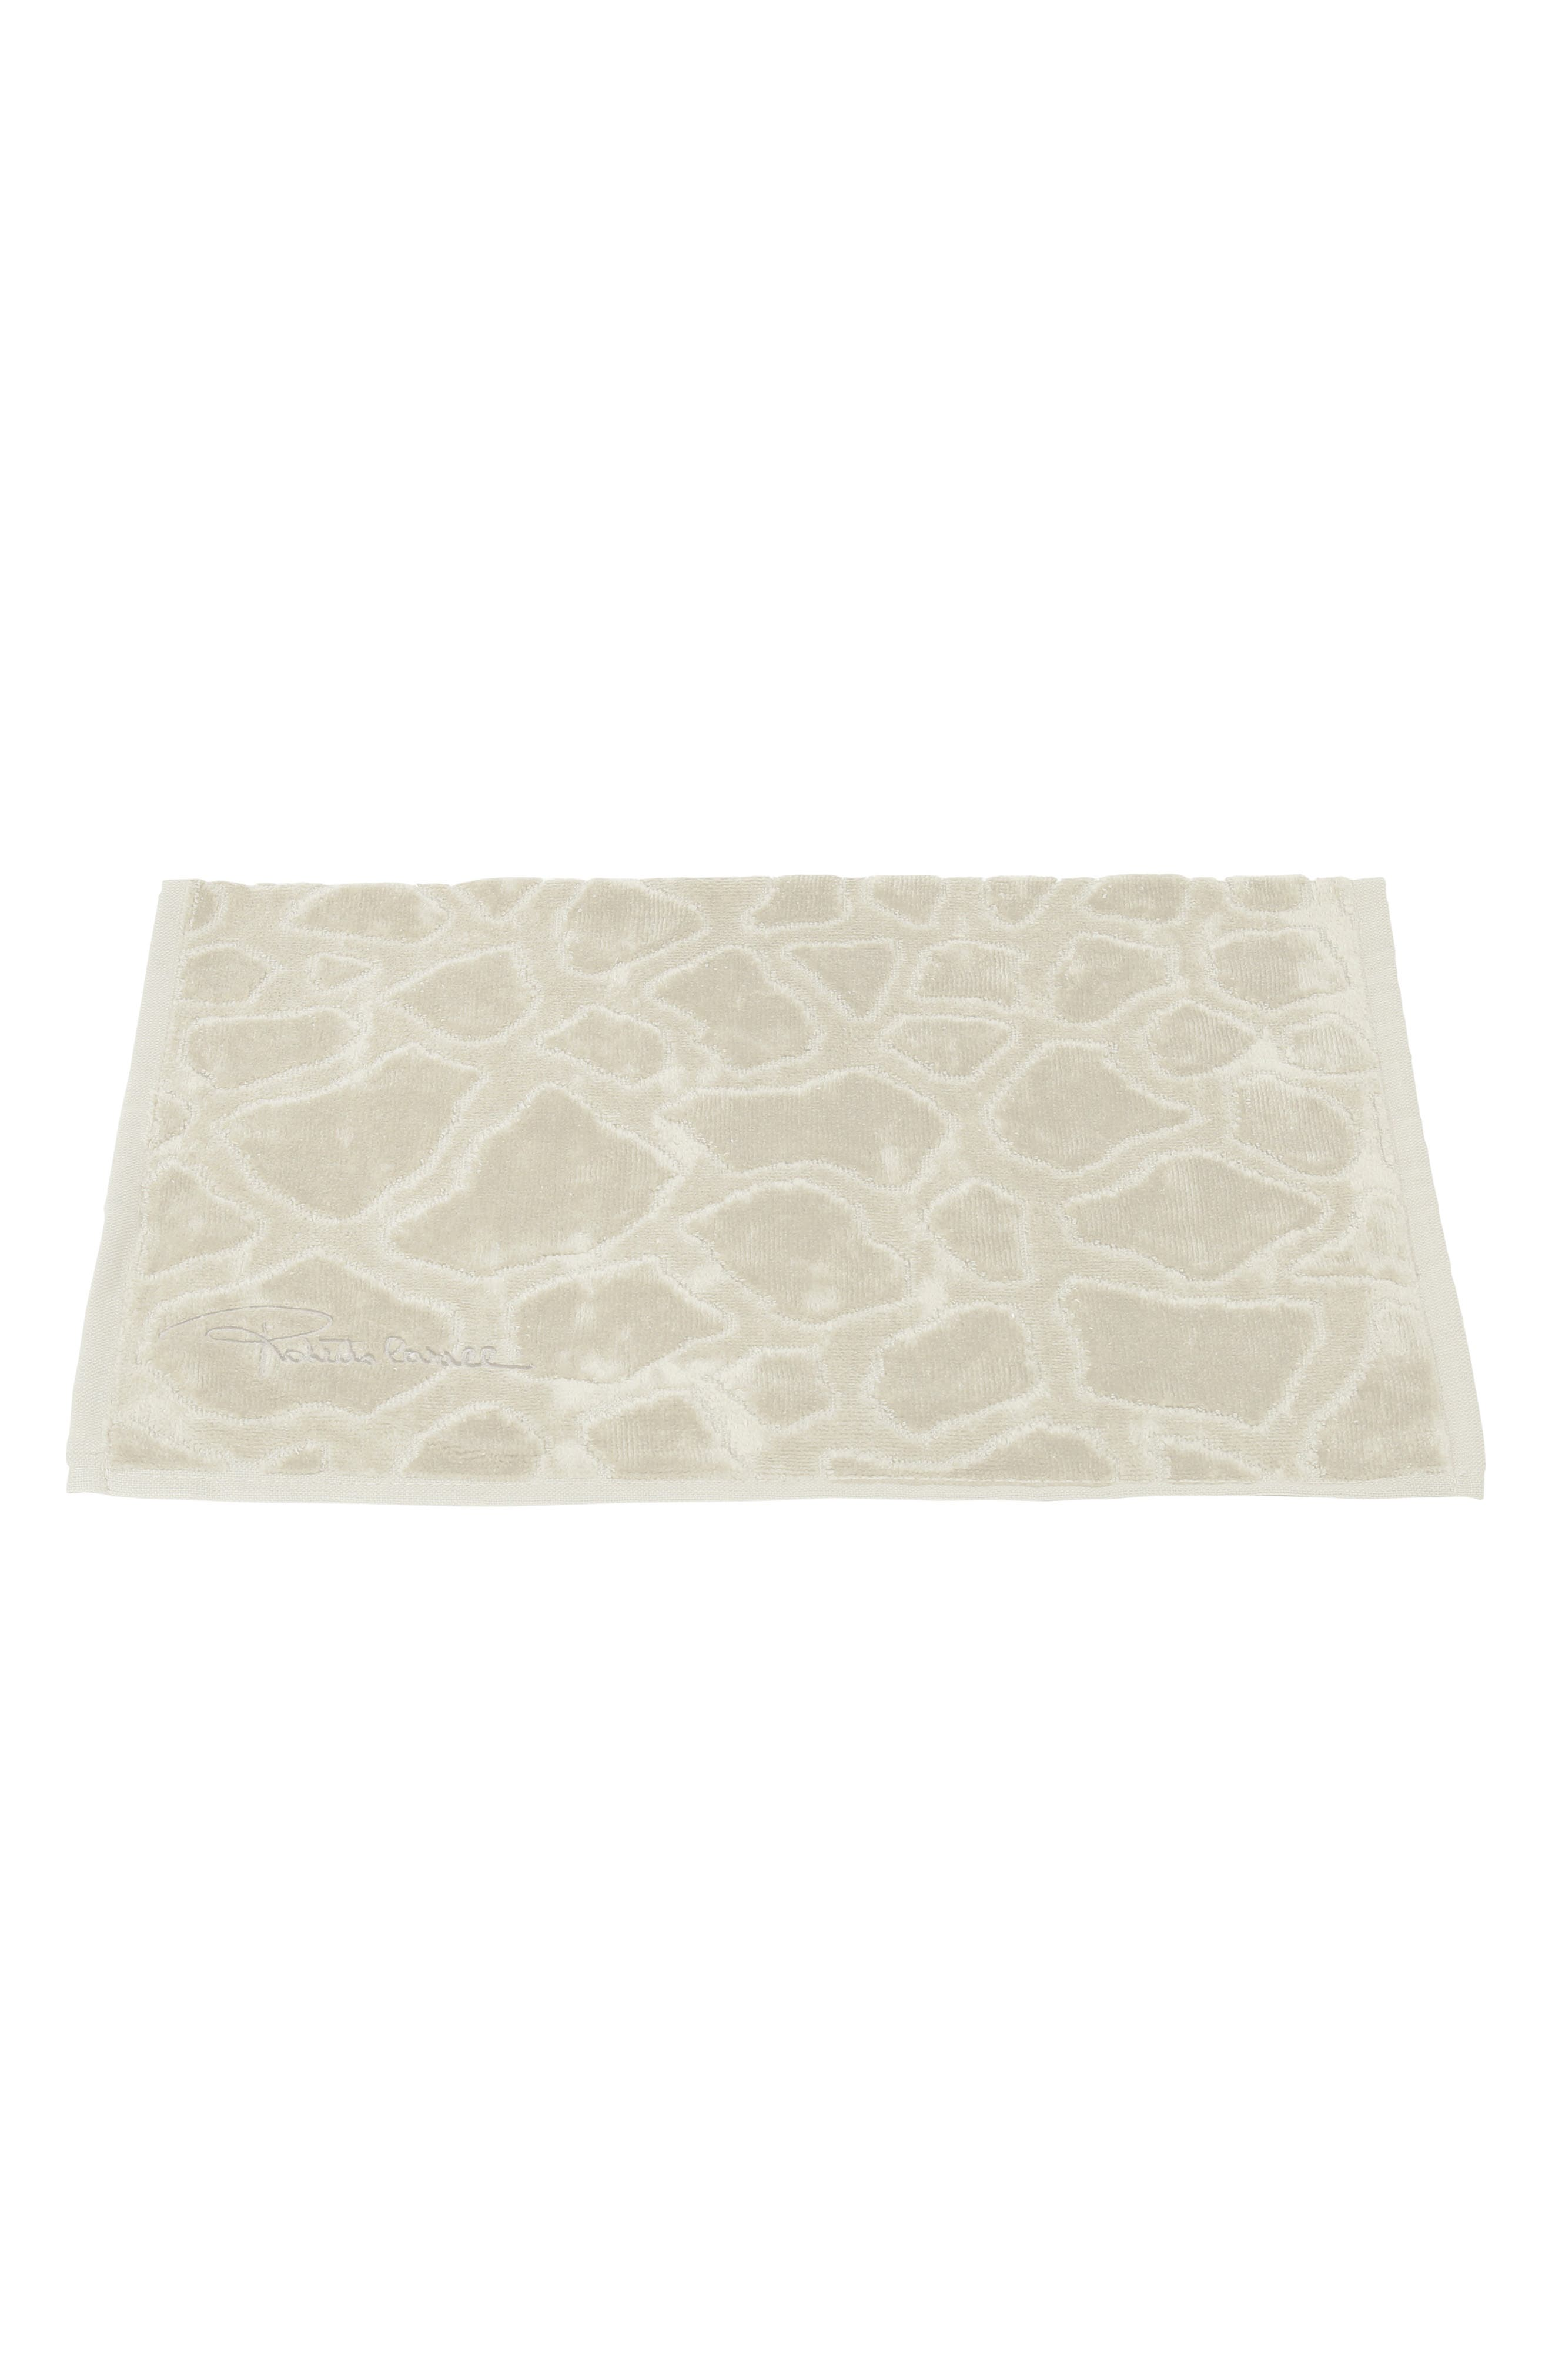 Roberto Cavalli Jerapha Hand Towel Size One Size  Ivory